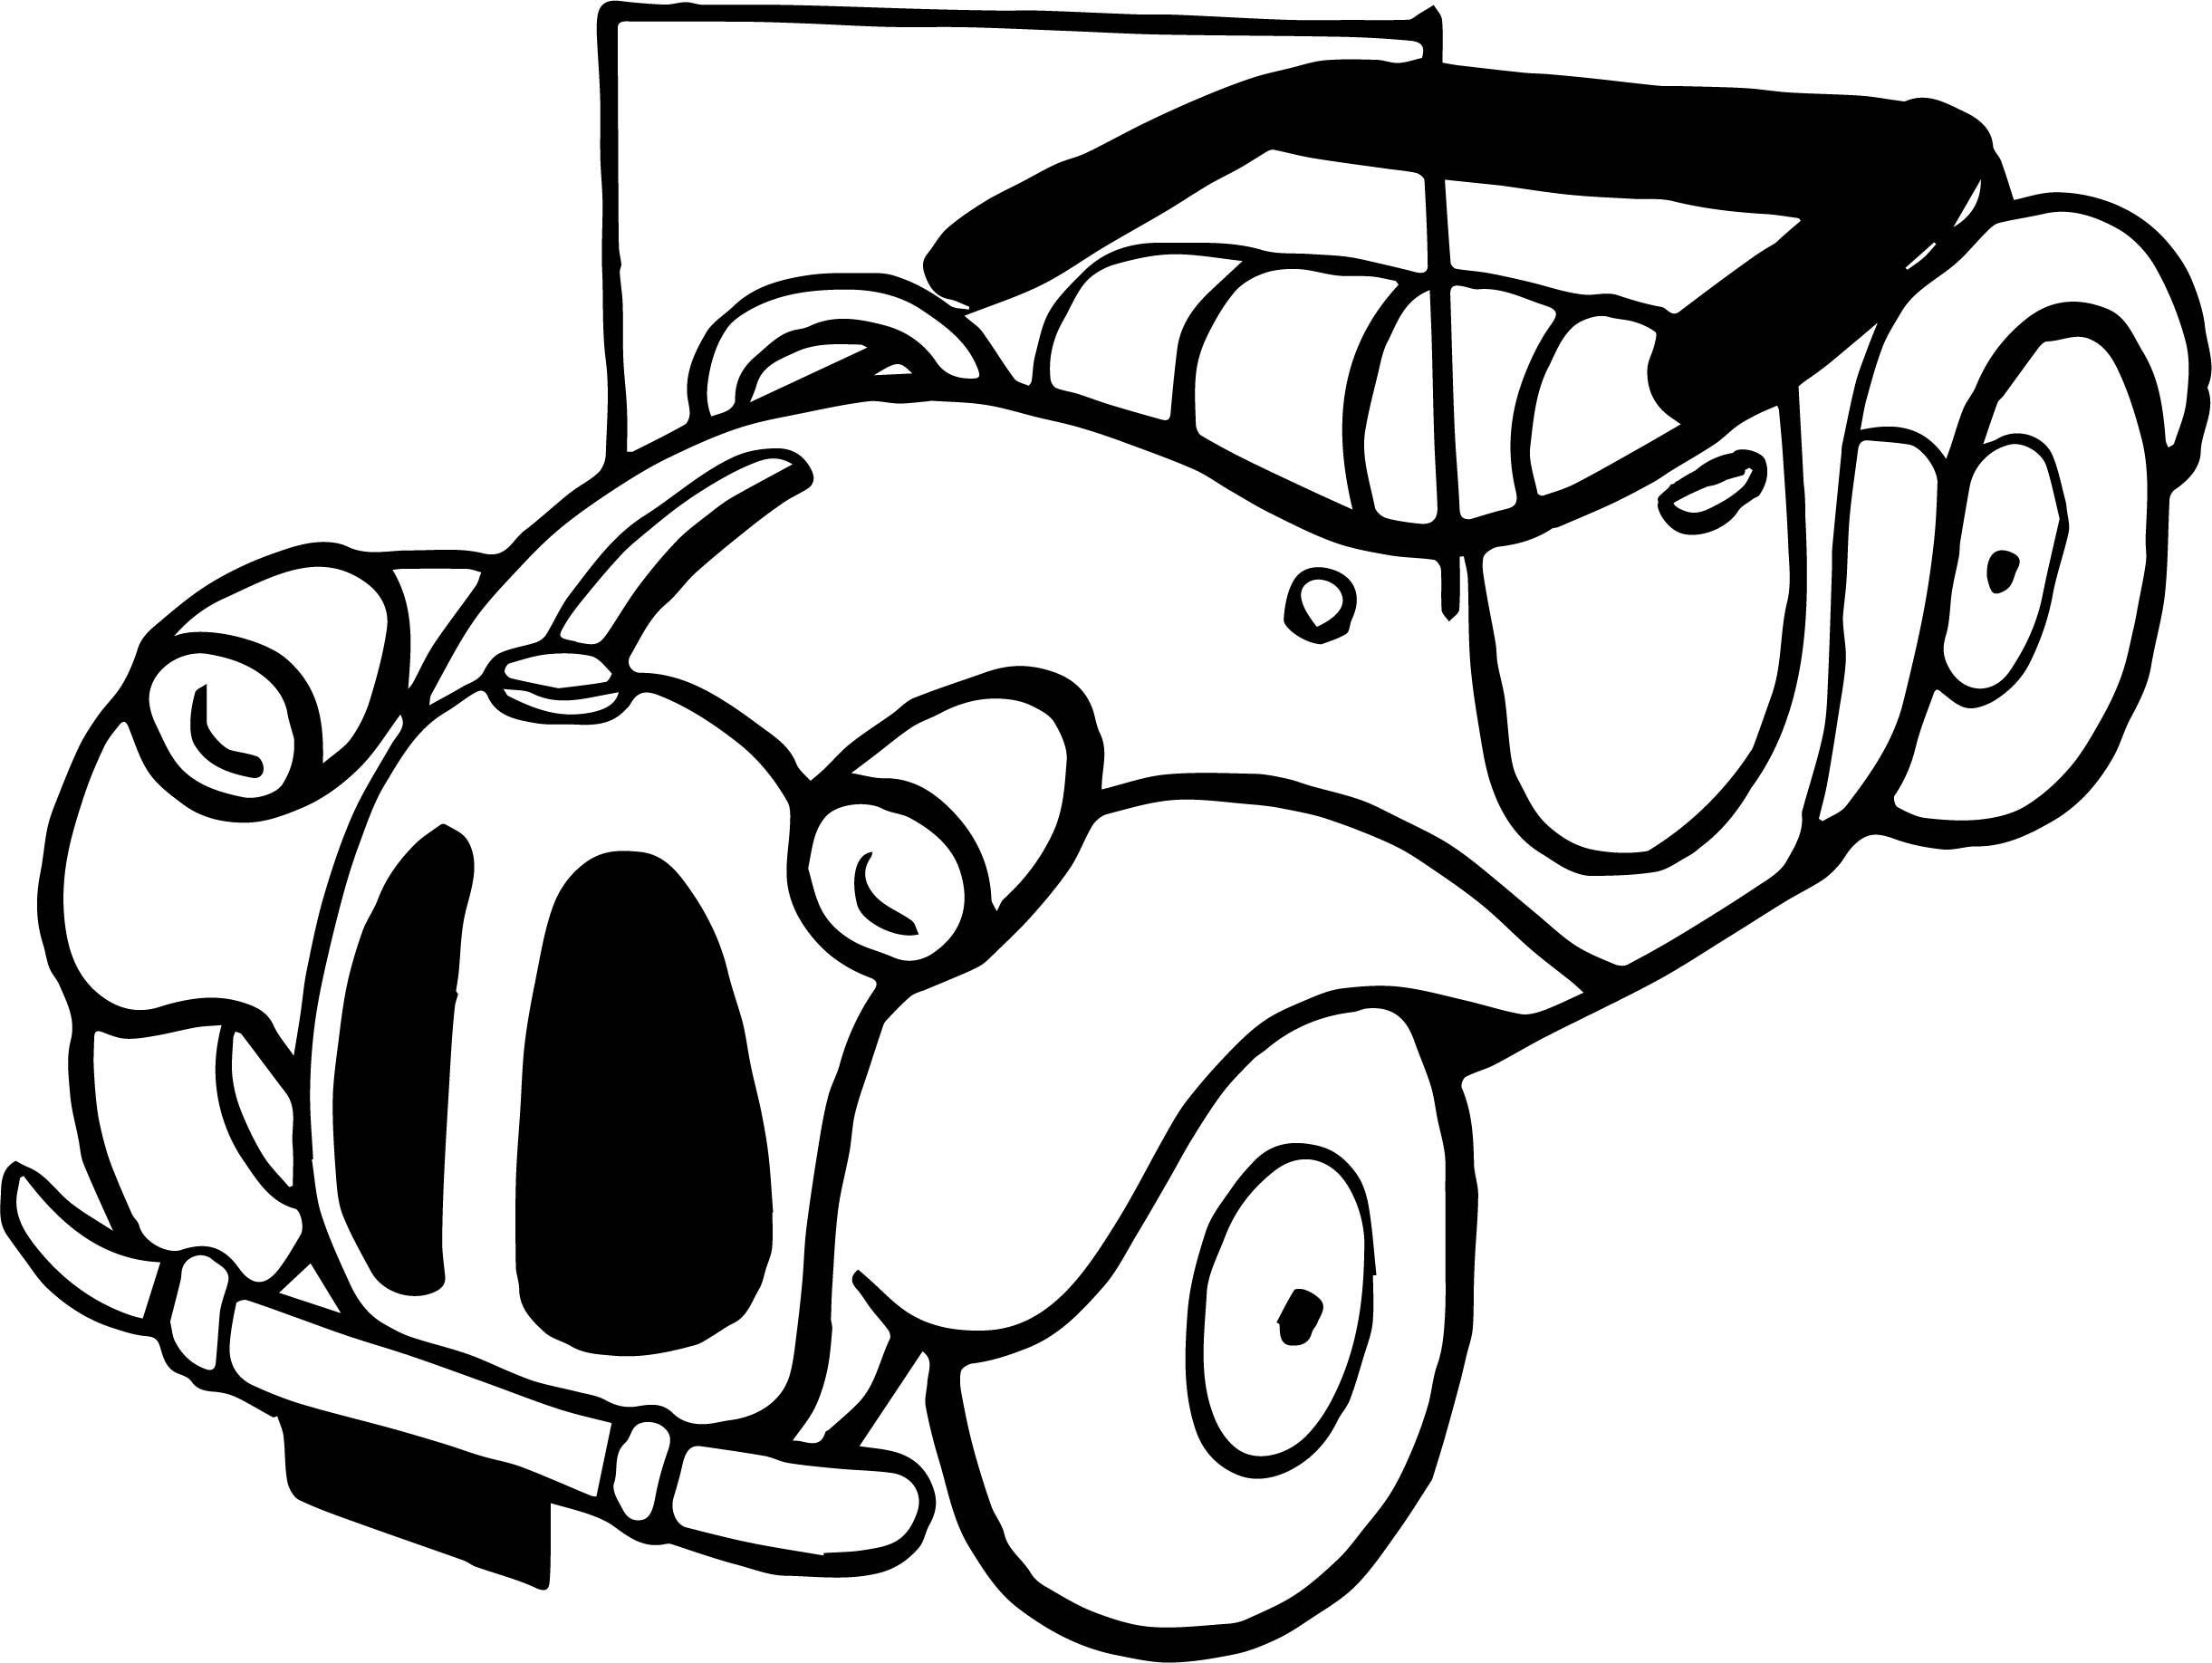 toy car coloring page cute toy car coloring page free clip art coloring car toy page